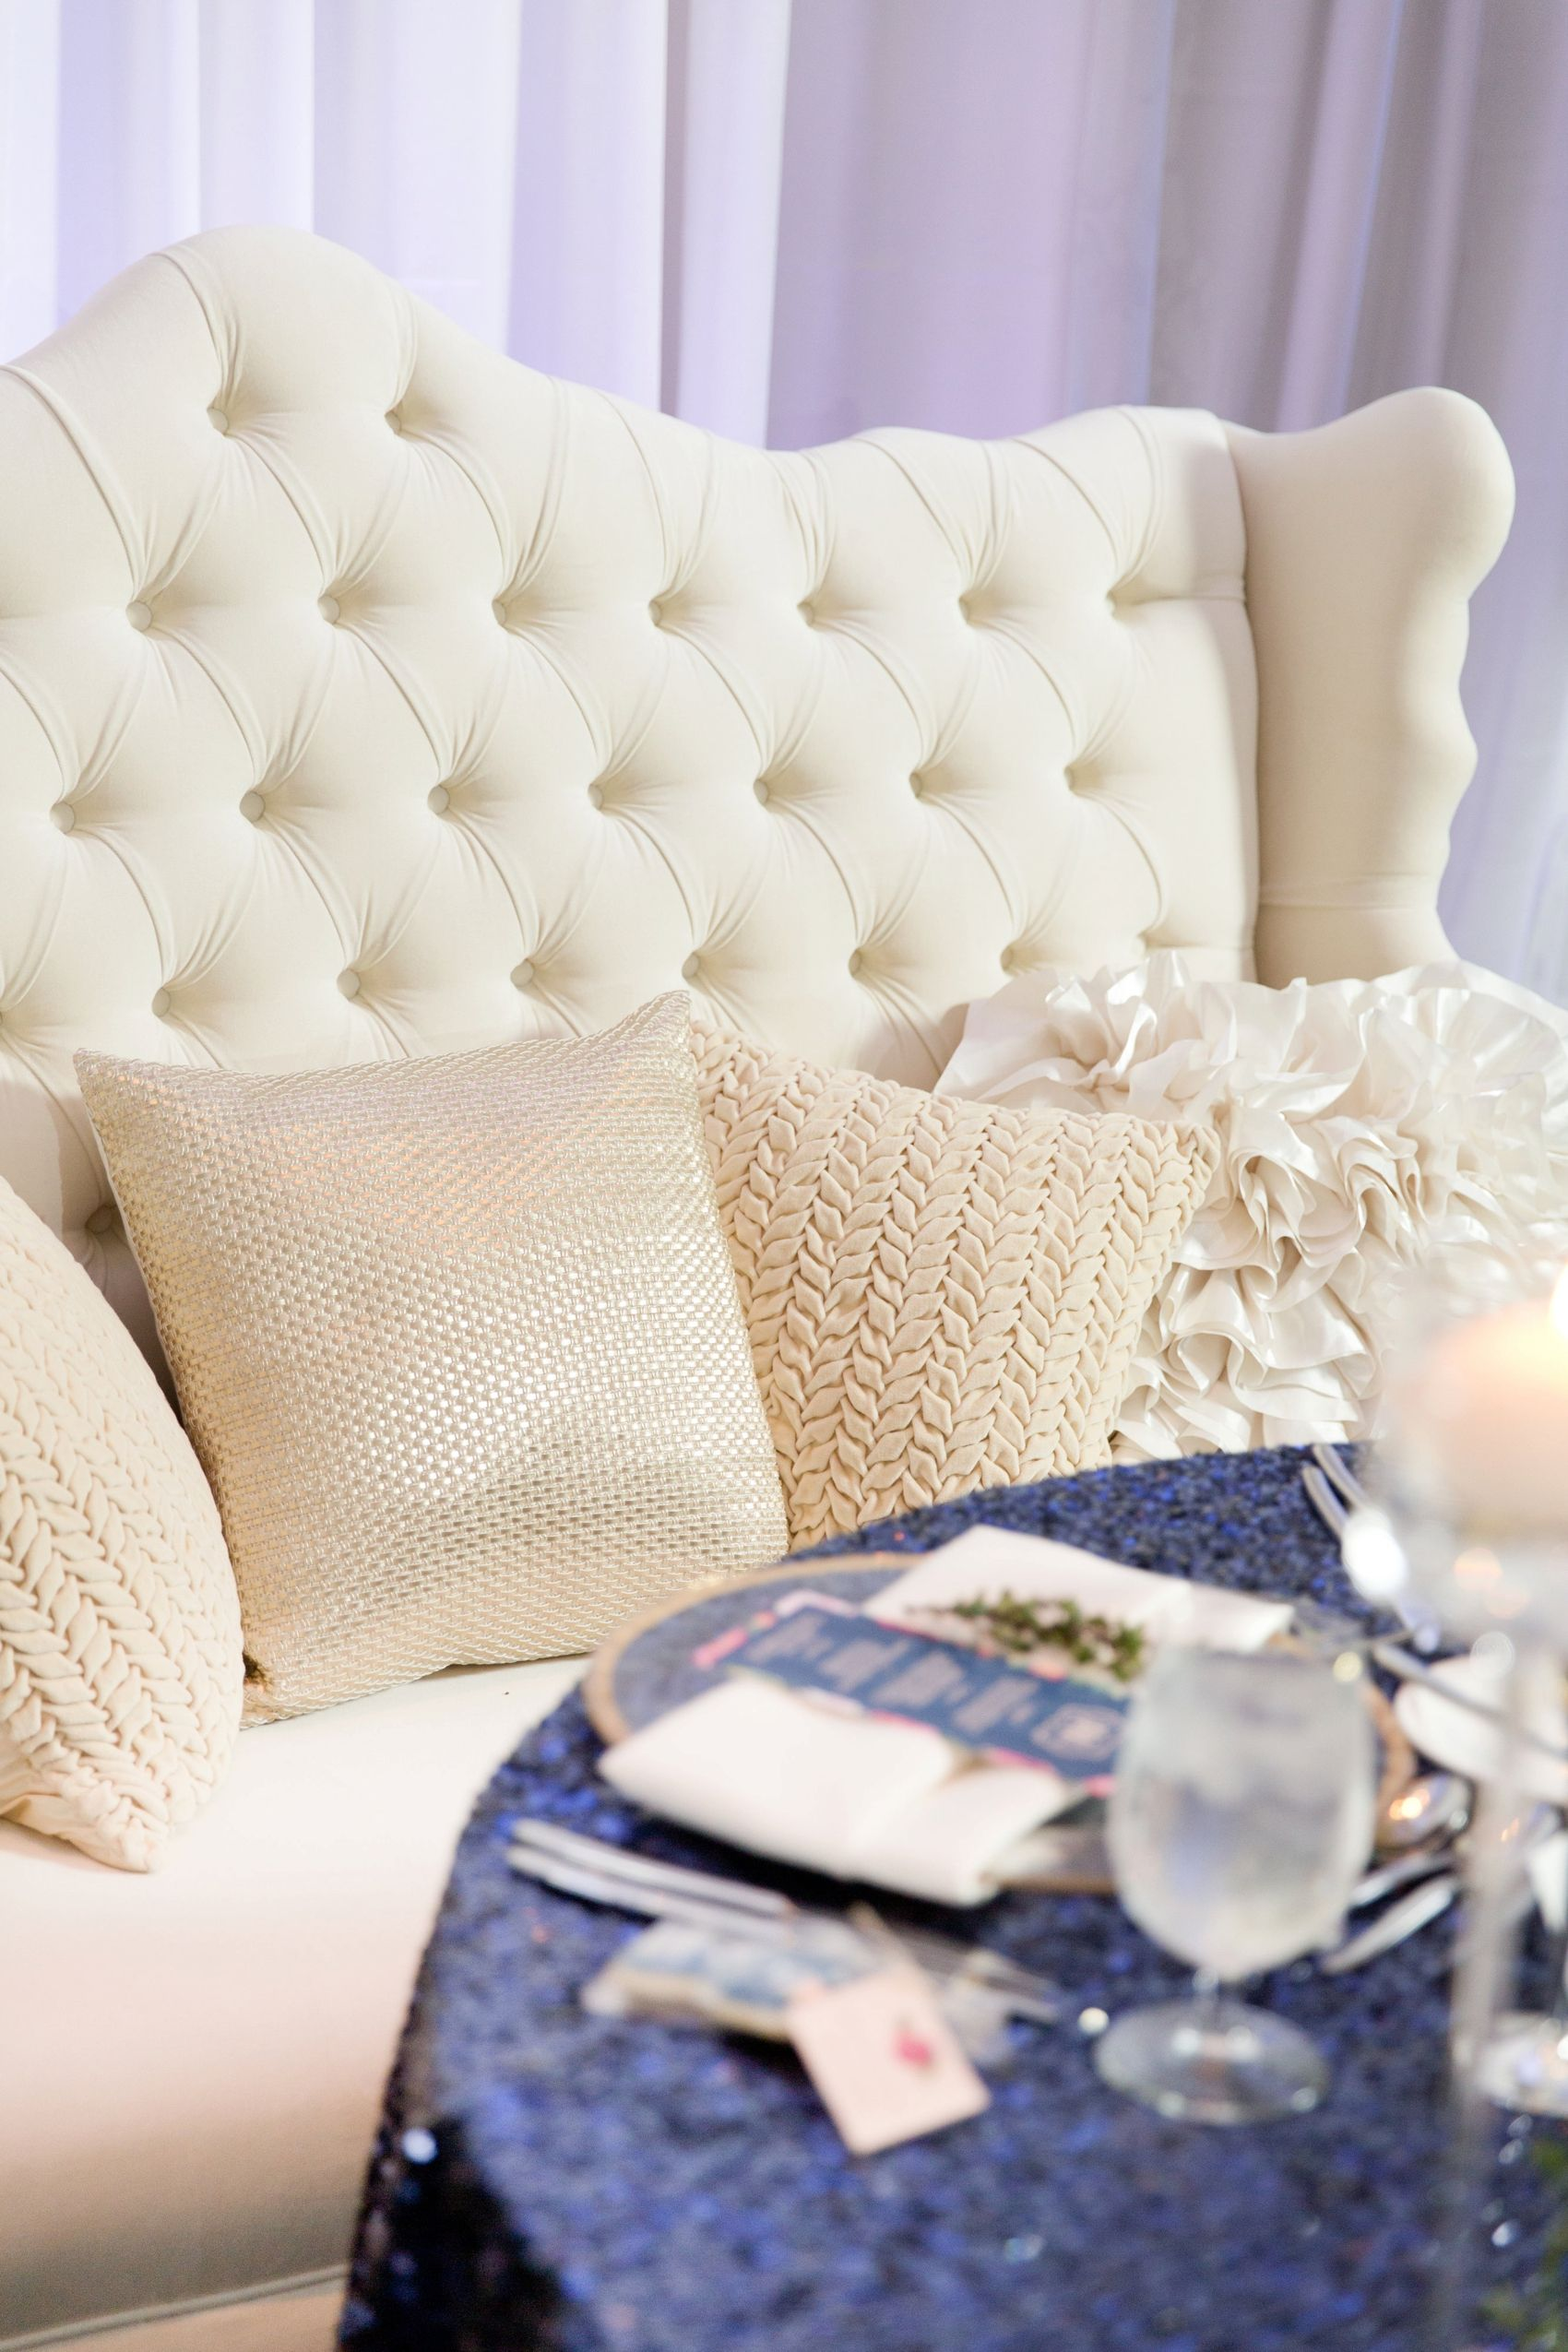 Desert Sanctuary on Camelback wedding. Gorgeous blush and navy color scheme, with lush white and pink florals.  And for the sweetheart table there was a cream colored tufted wing back love seat!